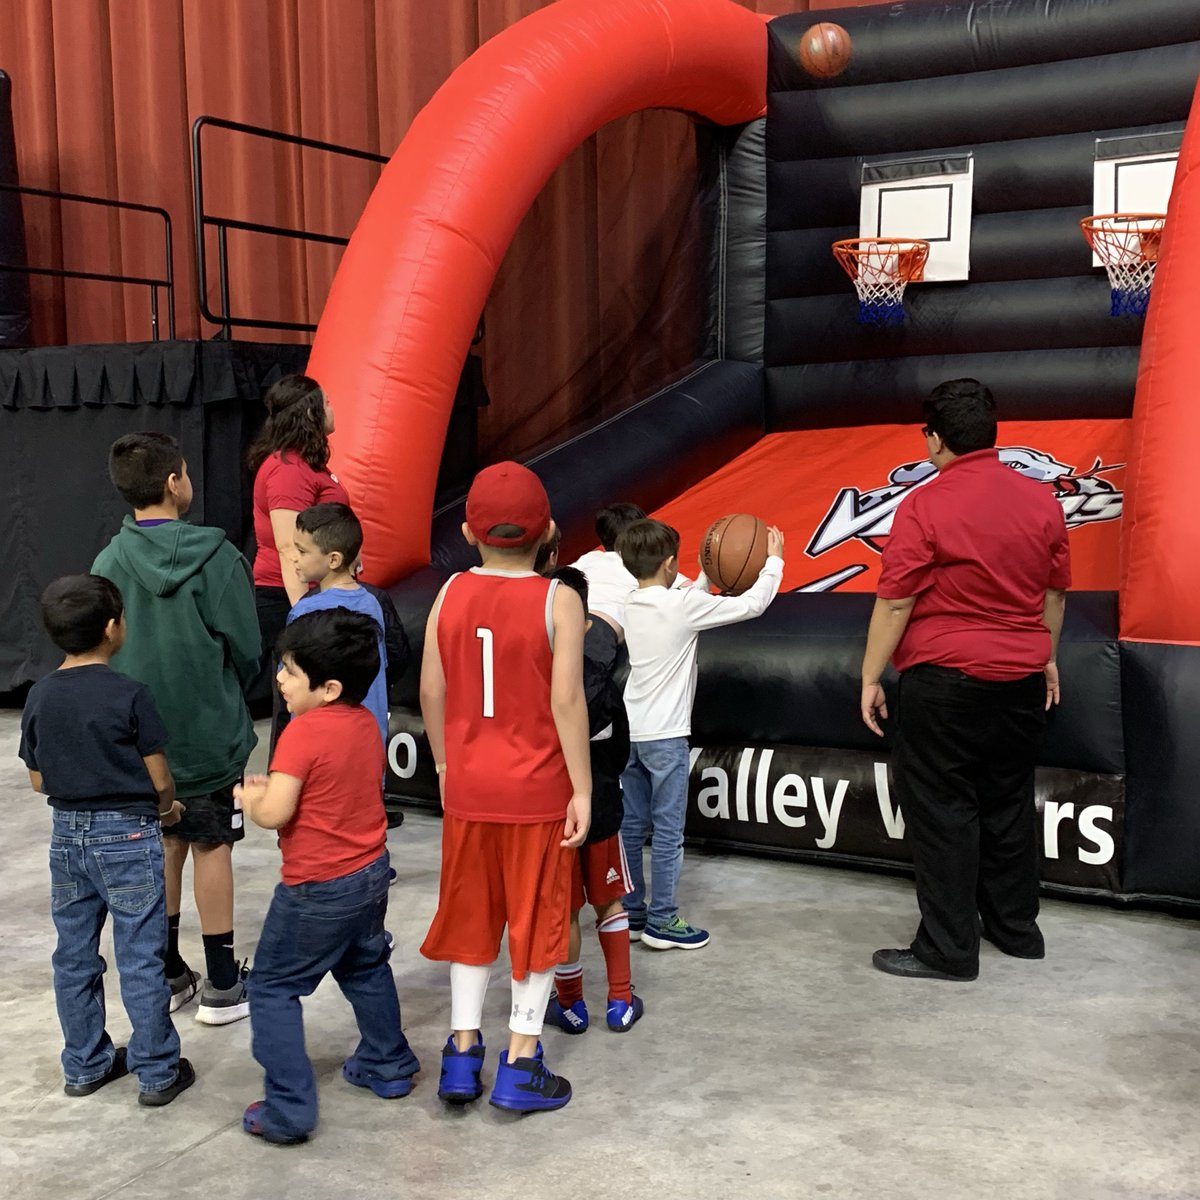 🏀Lil'Dribblers Kid Zone🏀 ‼️OPEN Tomorrow Feb. 22nd‼️ from 6:30pm till end of 3rd quarter!🐍 Bring the kids out and enjoy some family fun as the #RGVVipers take on #IowaWolves at Bert Ogden Arena!  Tickets➡️ http://www.rgvipers.com #RGVVipers #NextLevel #nbagleague